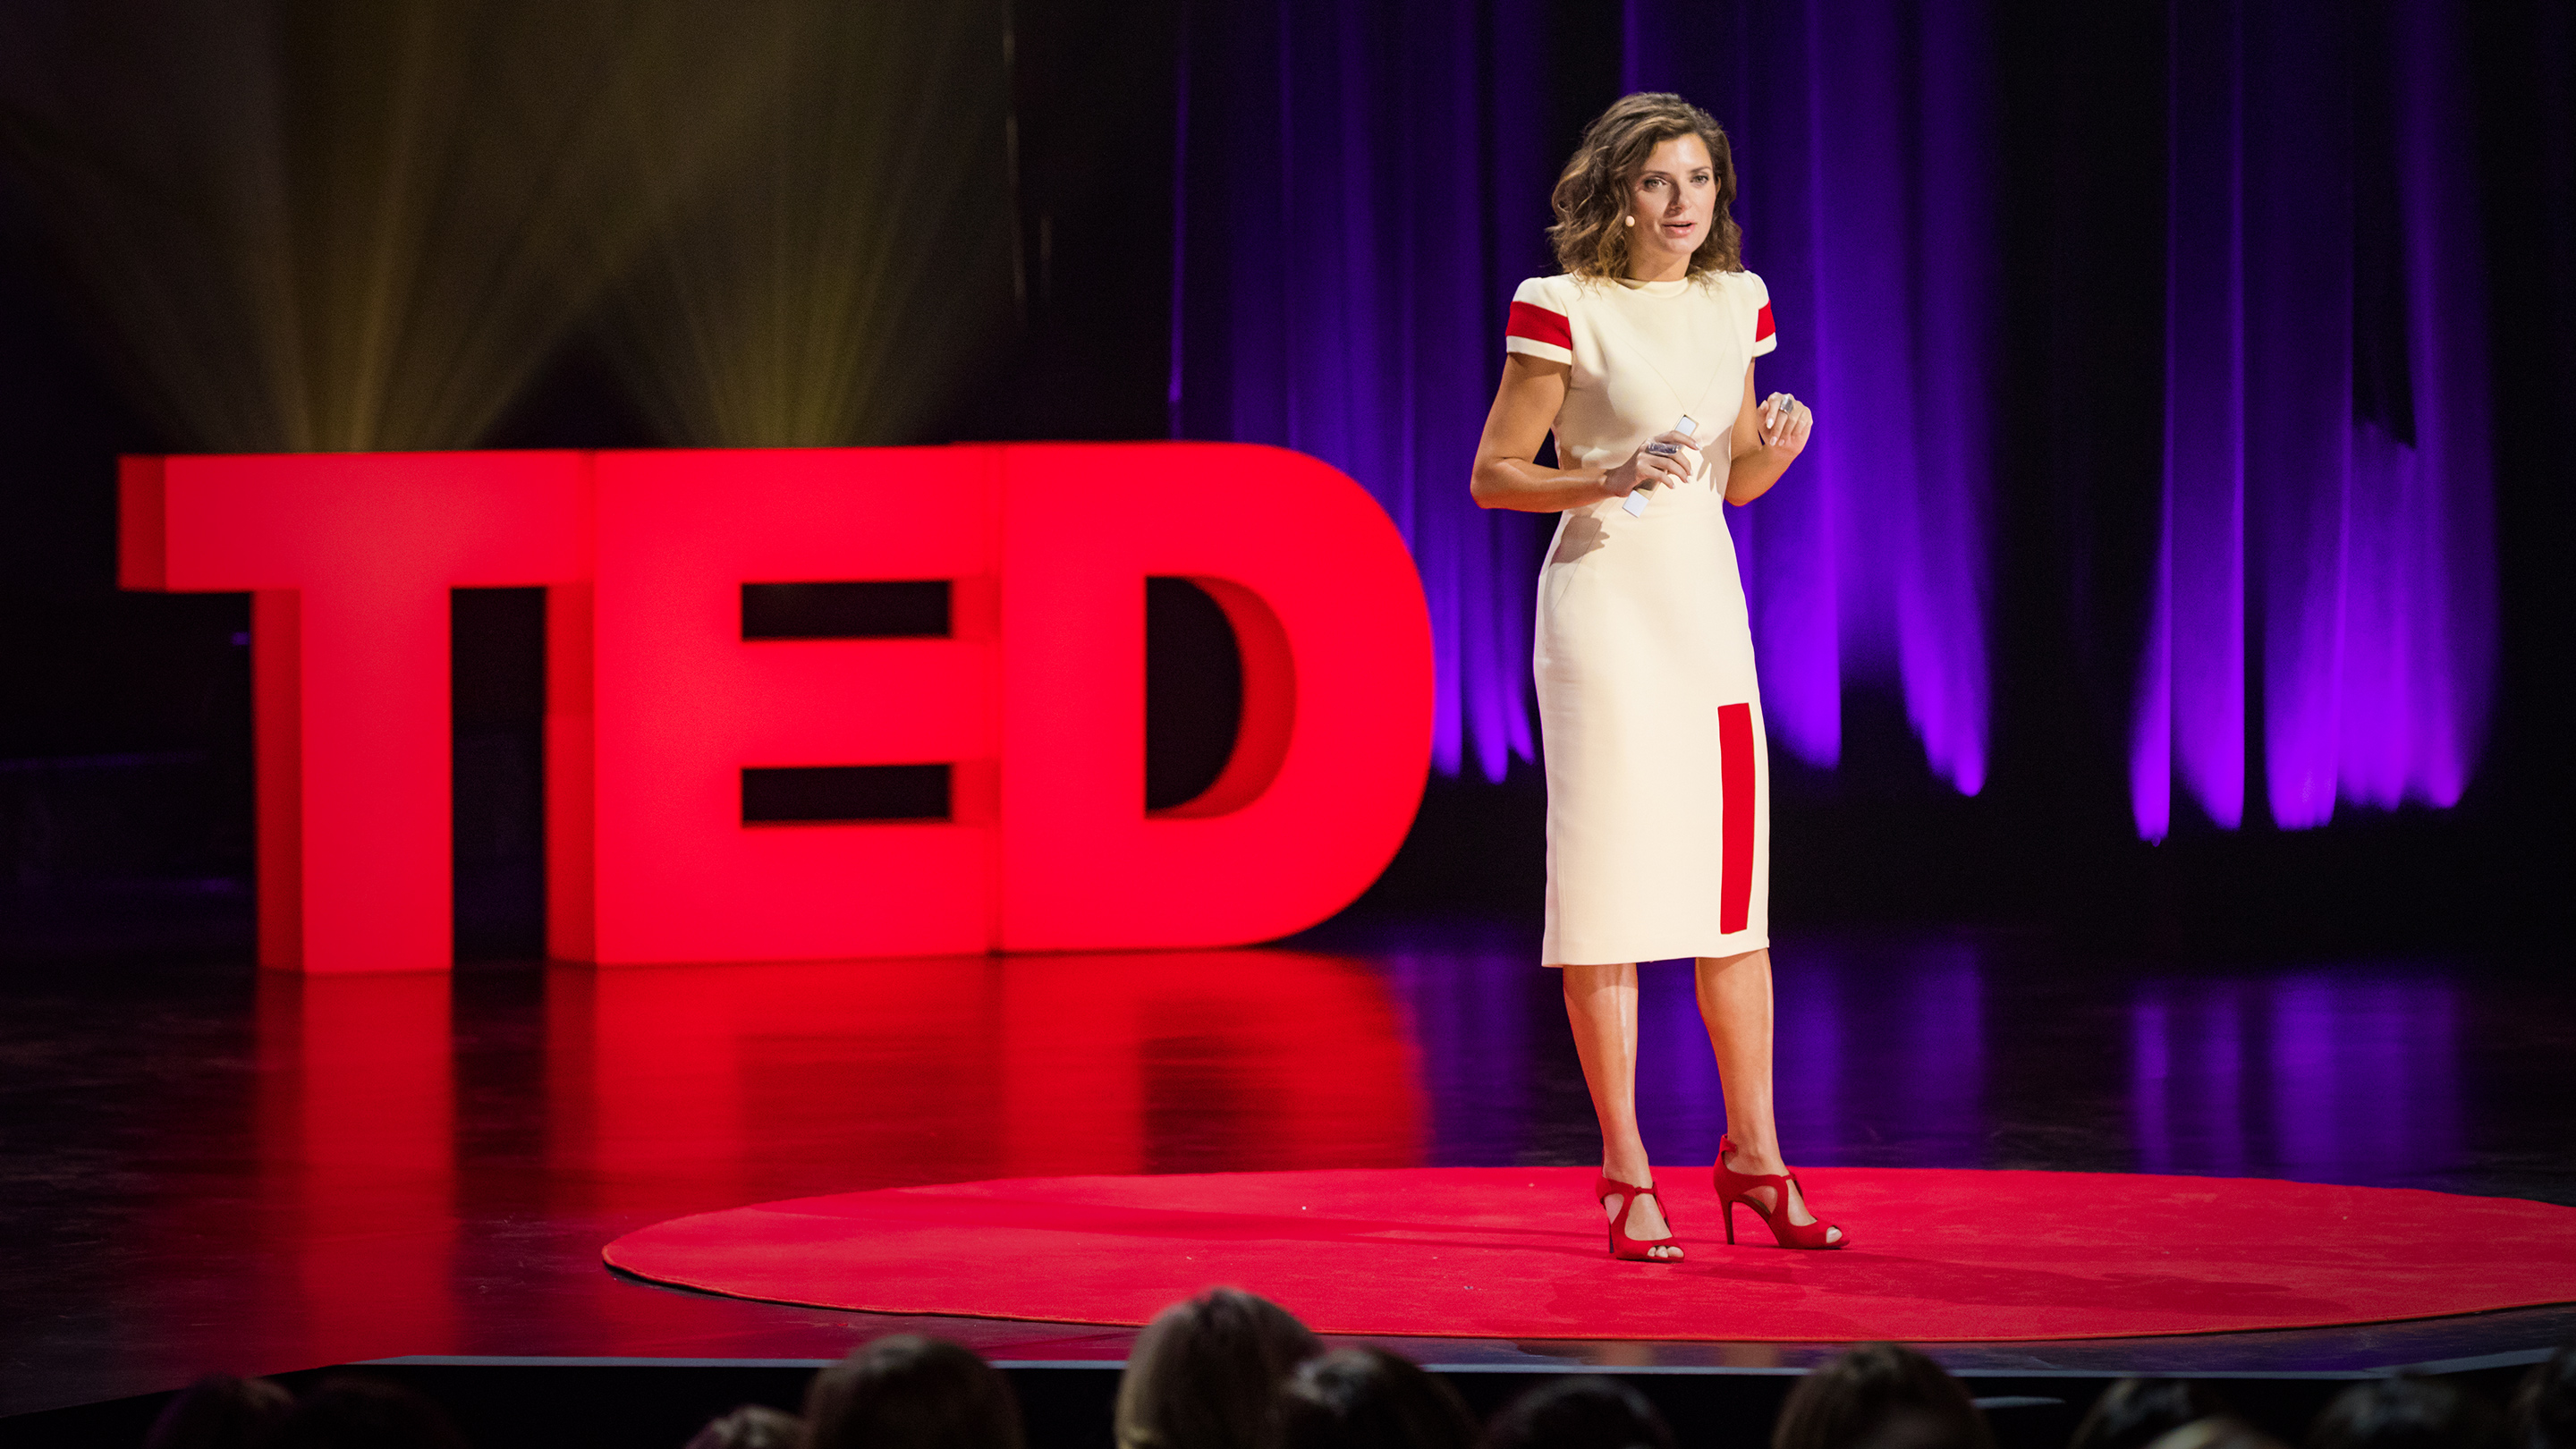 Lýdia Machová: The secrets of learning a new language | TED Talk